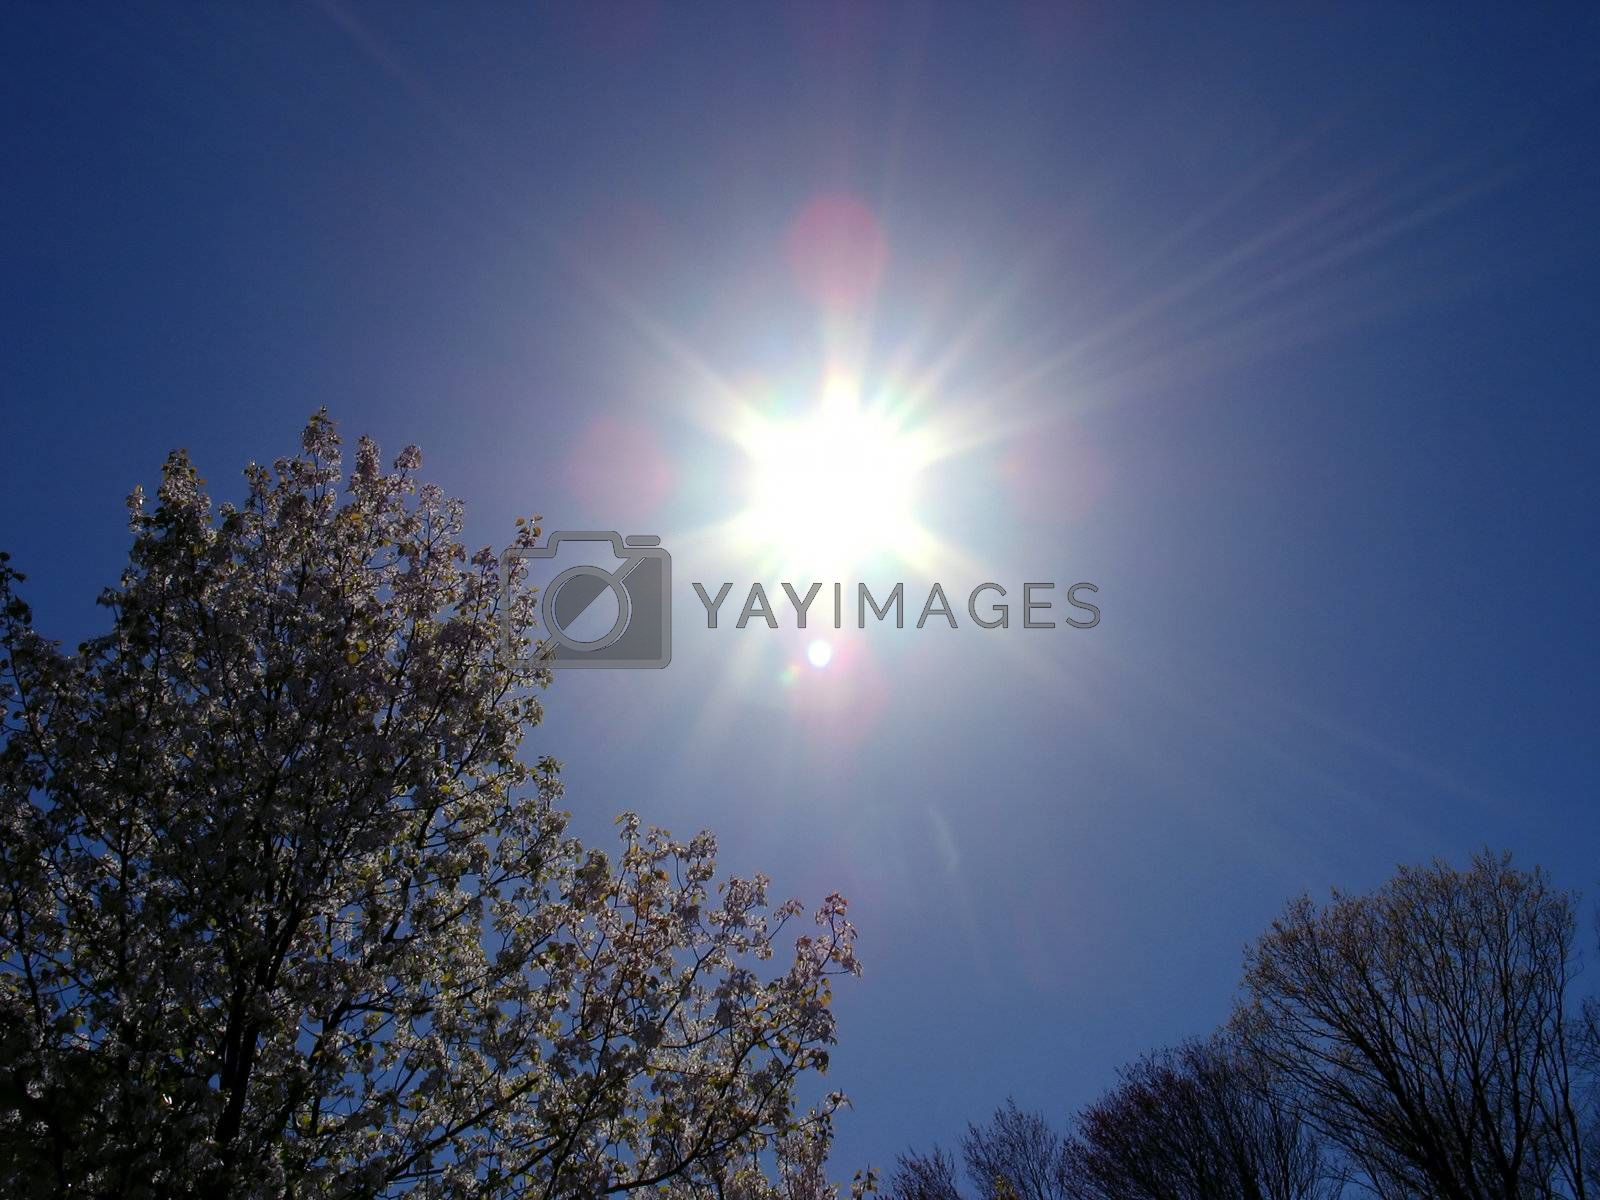 A beautiful lens flare over some blossoming trees in the springtime.